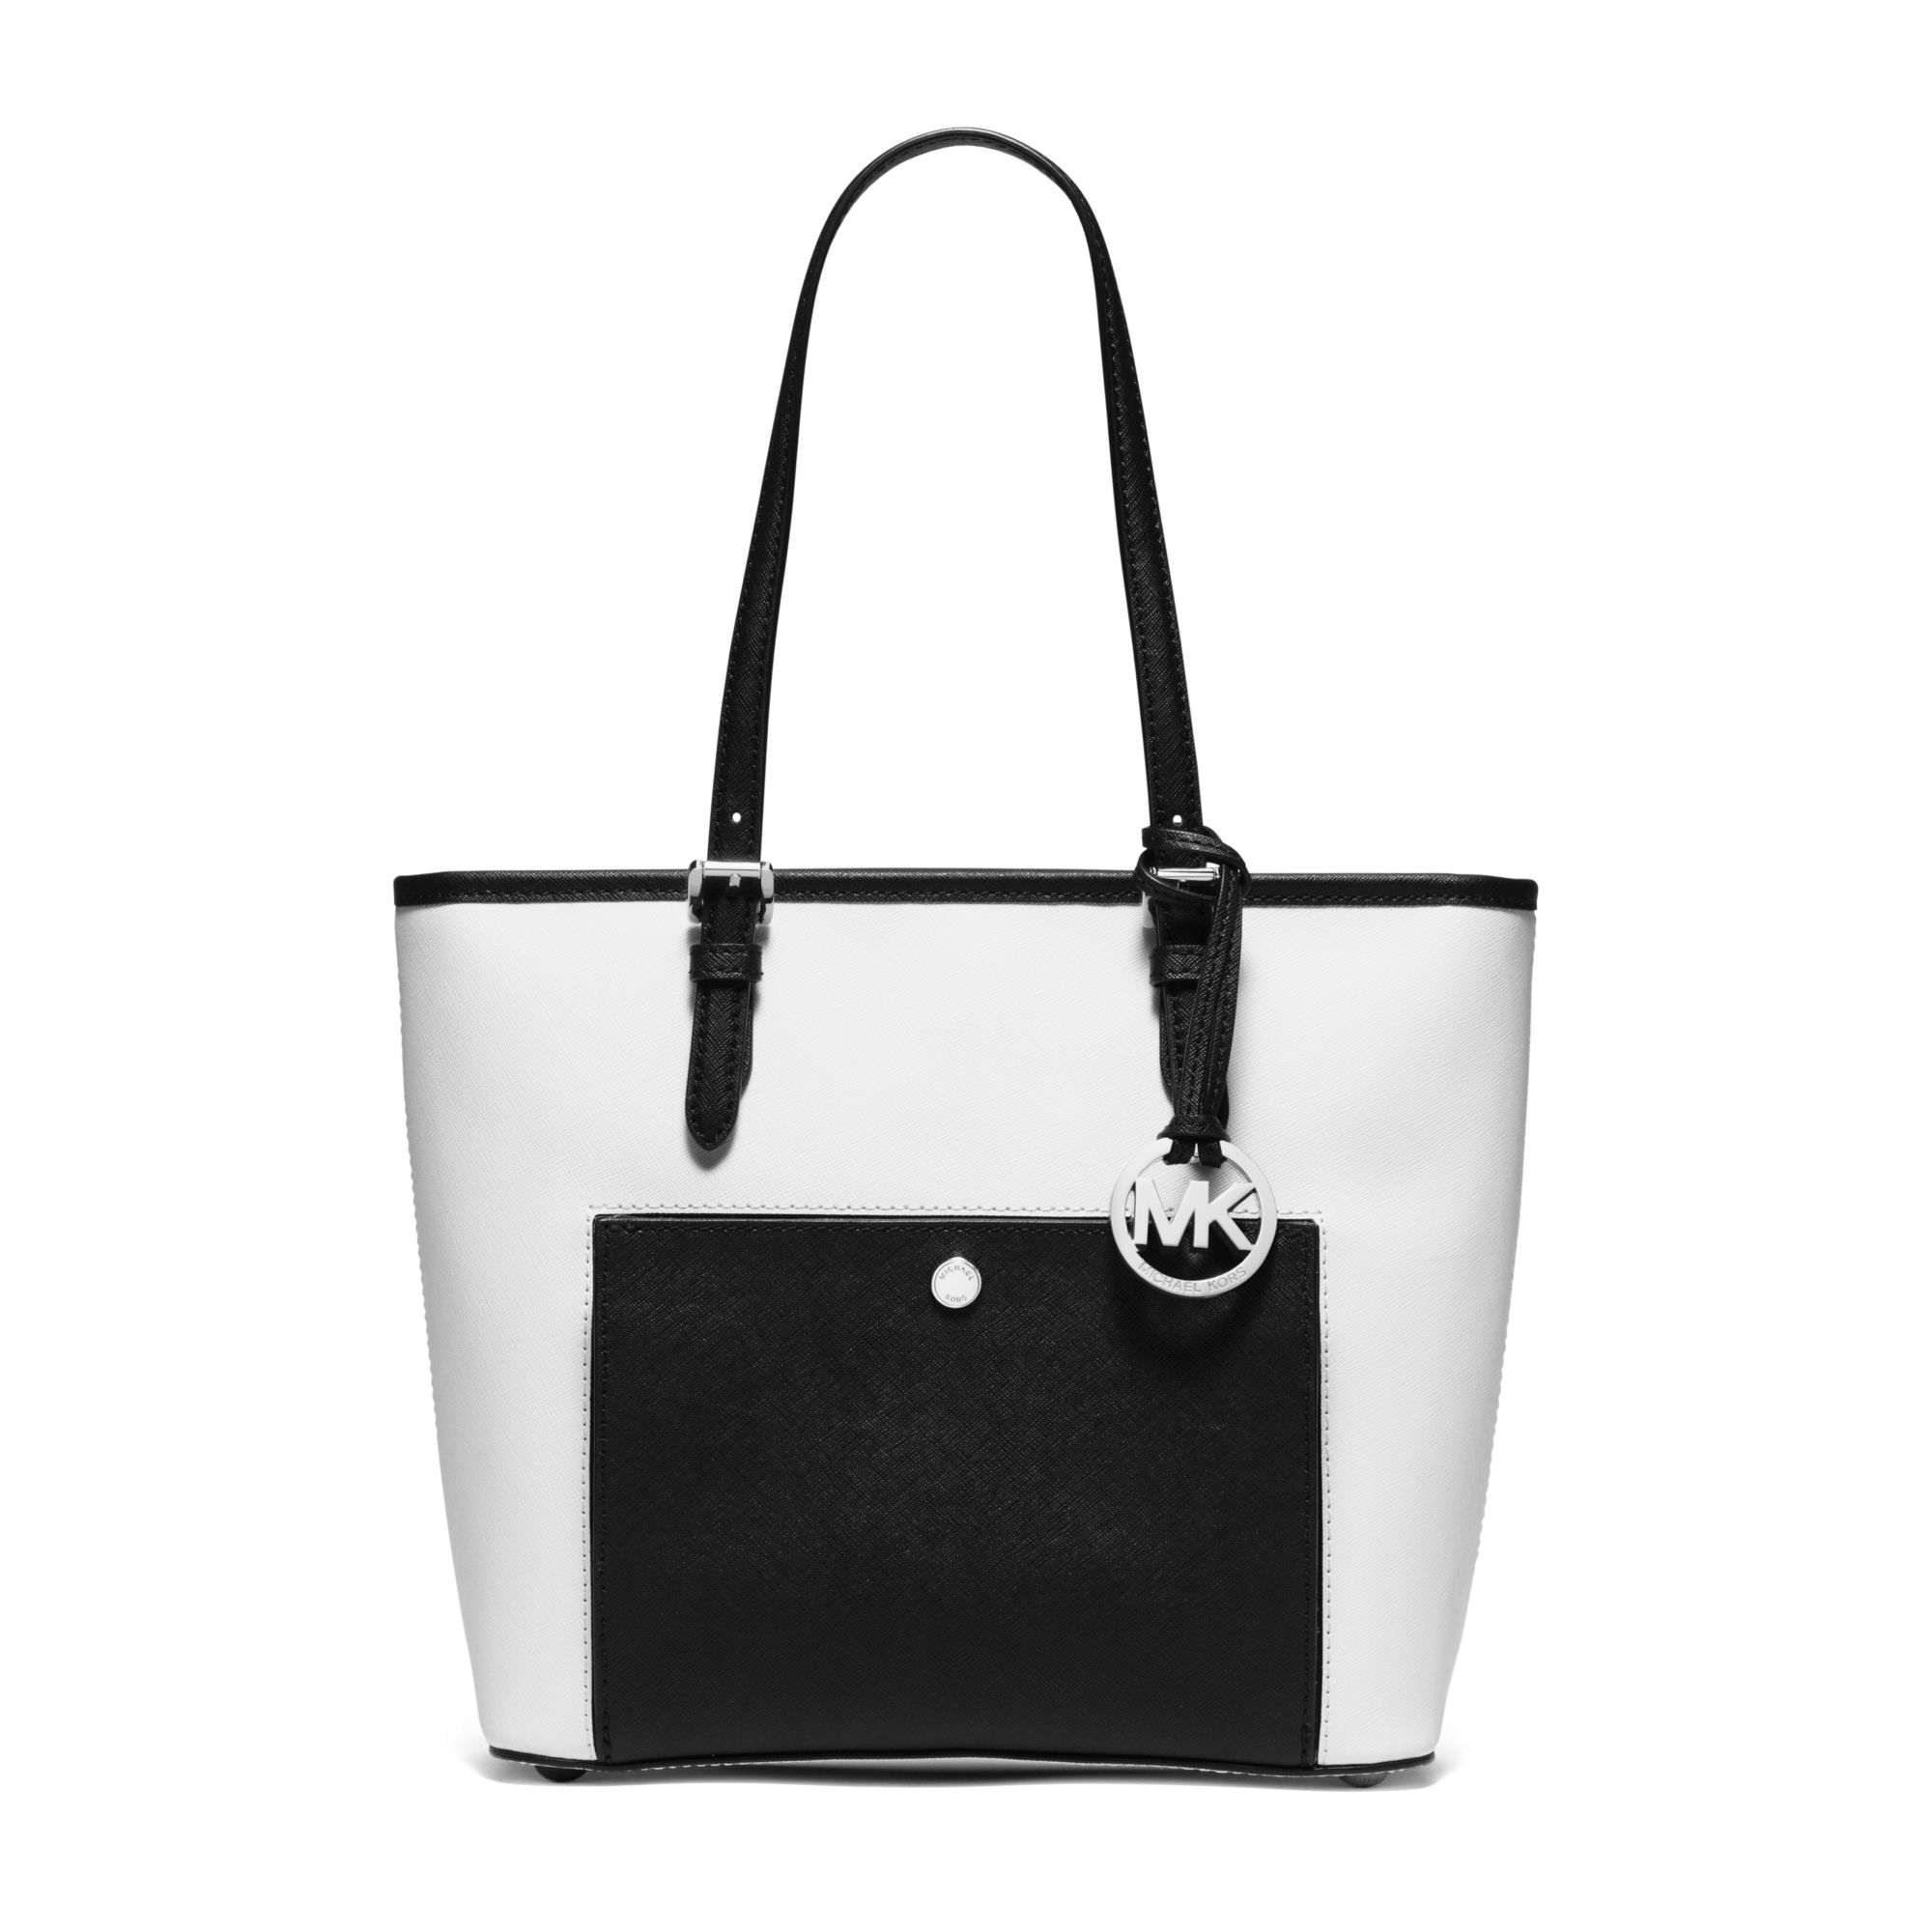 b7ae549544b6 Michael Kors Jet Set Travel Medium Saffiano Leather Tote in White - Lyst